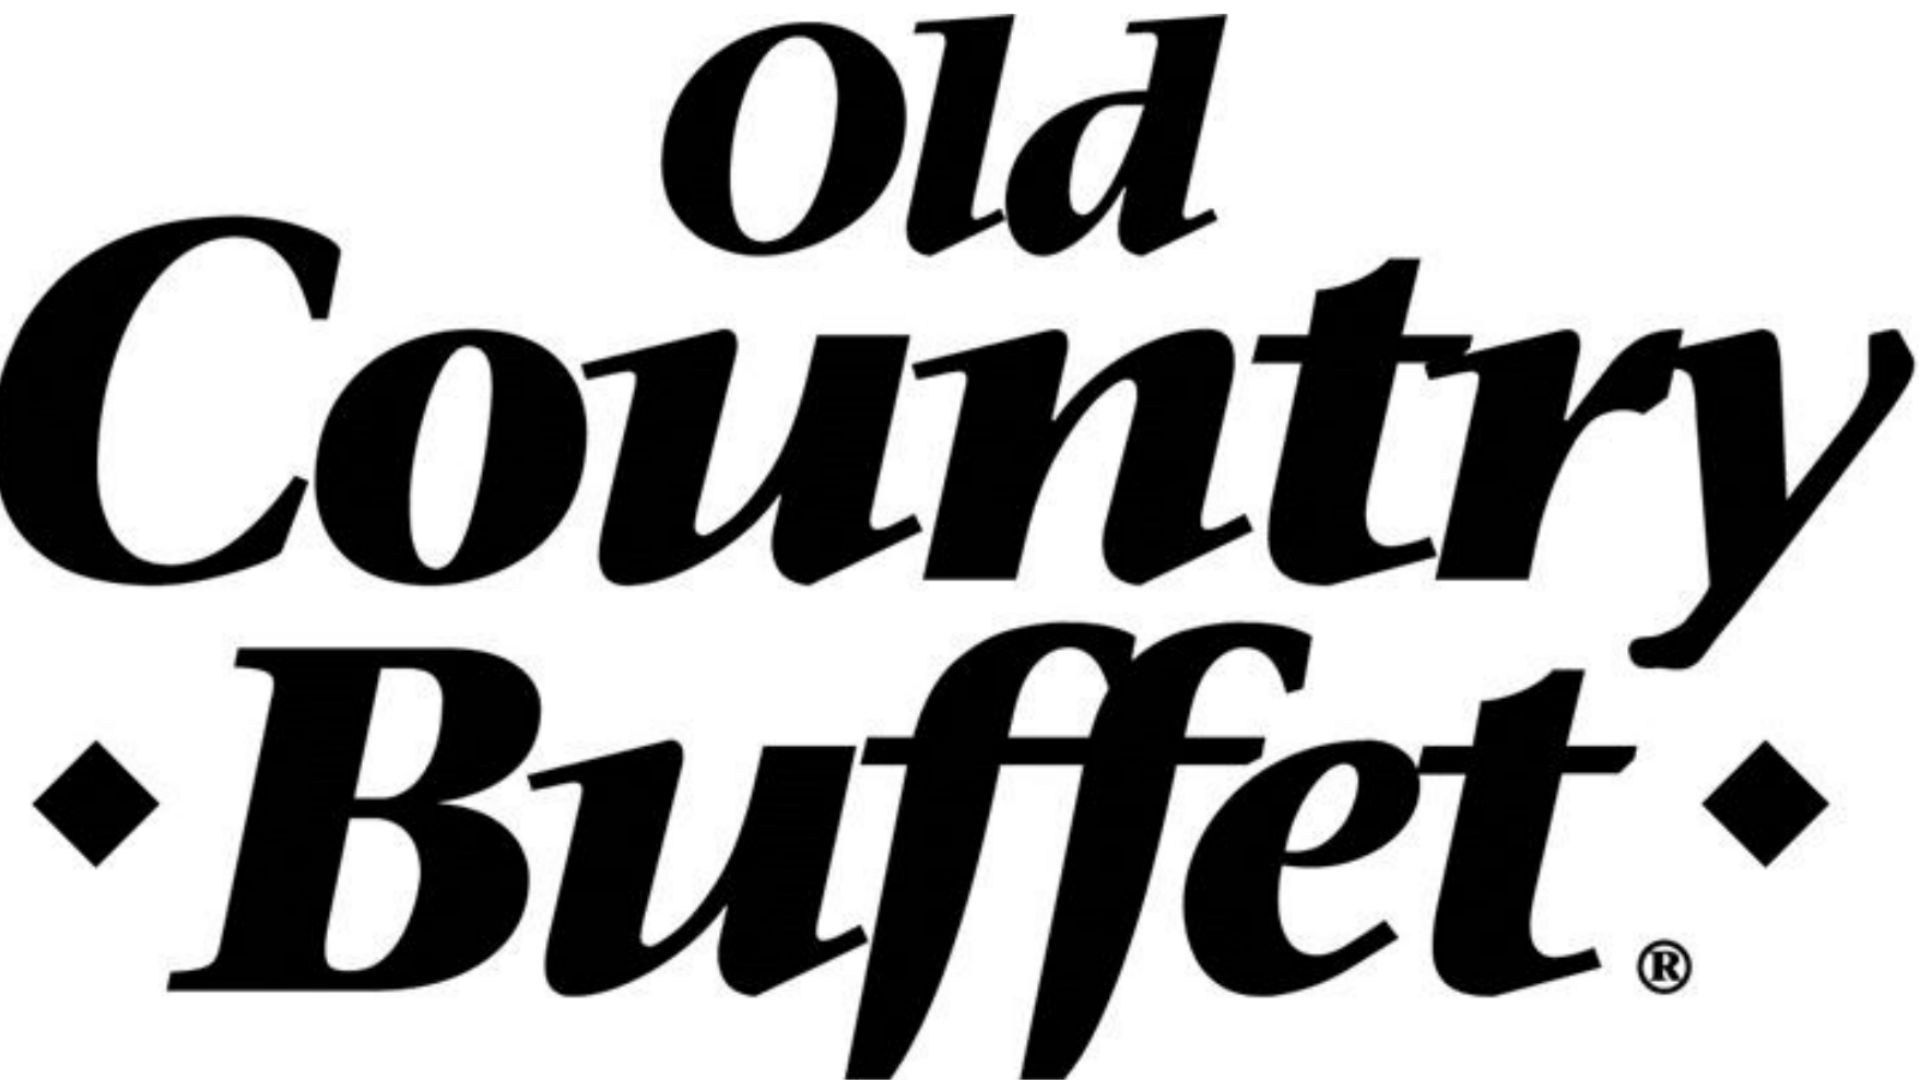 old country buffet auctioning store contents news rh mankatofreepress com old country buffet careers Old Country Buffet Desserts